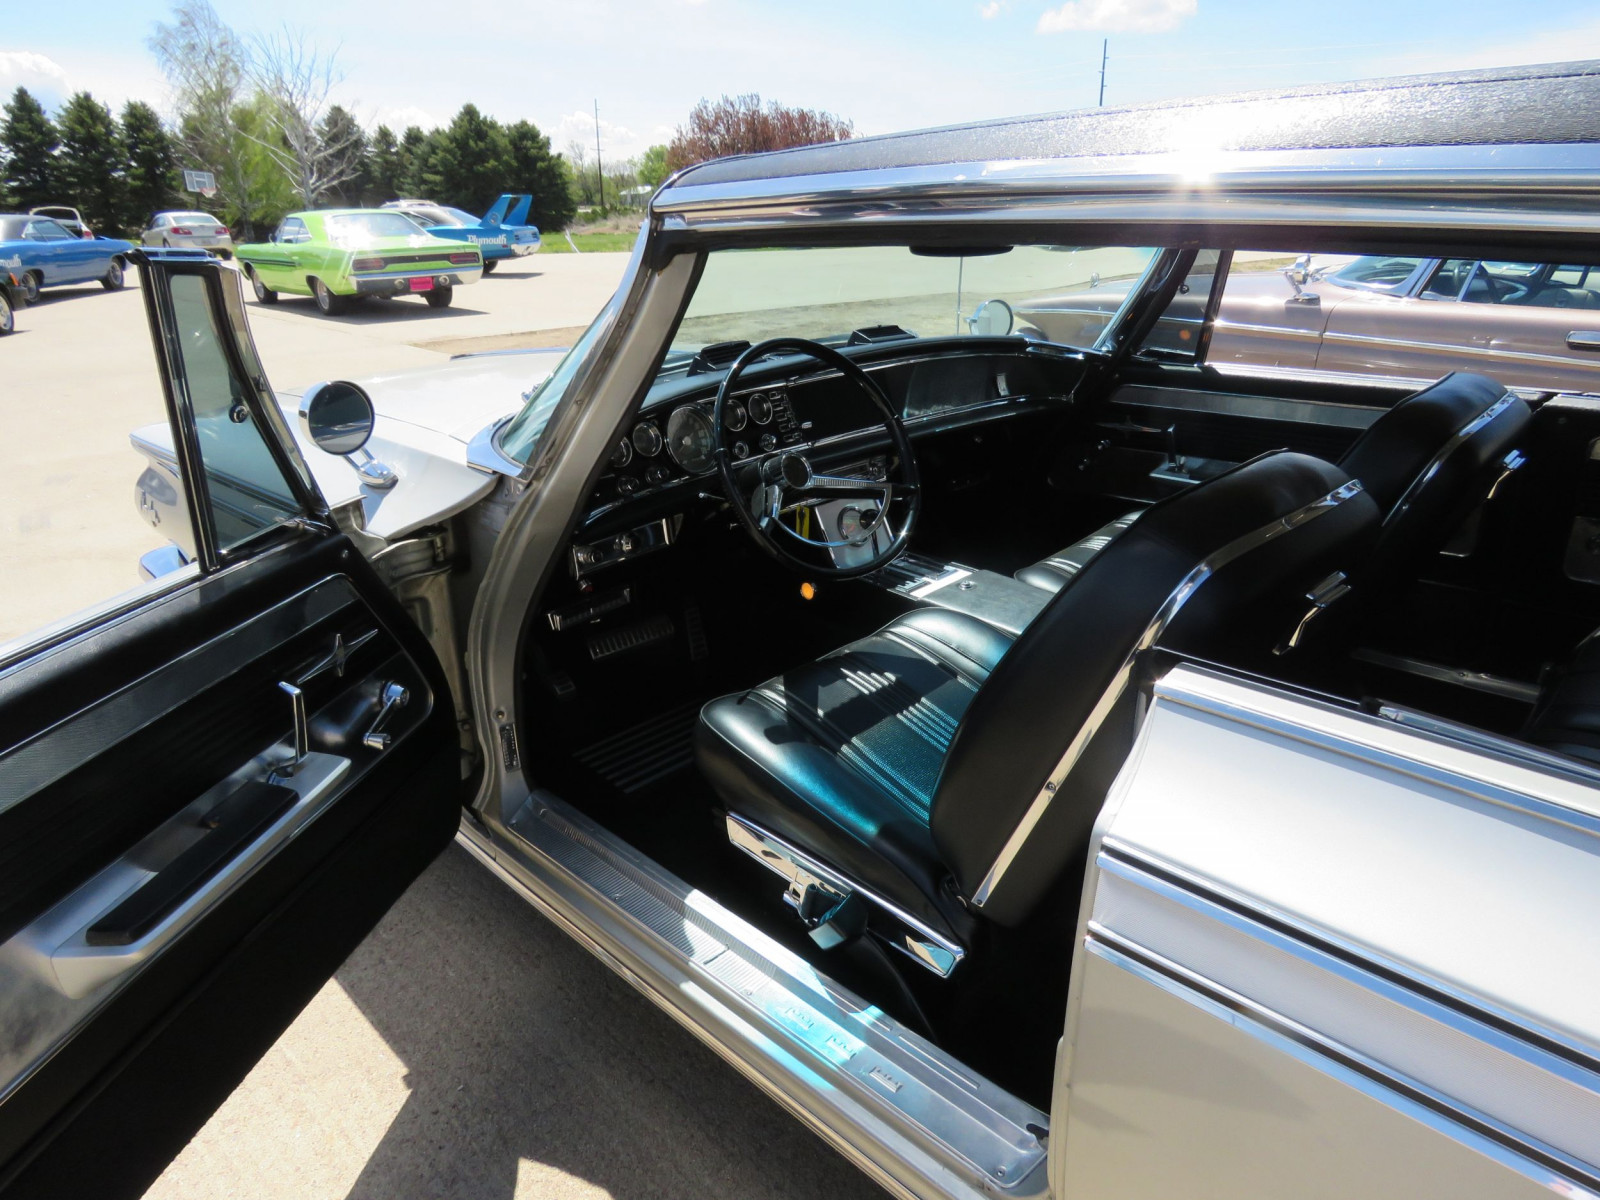 1964 Chrysler 300 Silver Edition 2dr HT - Image 15